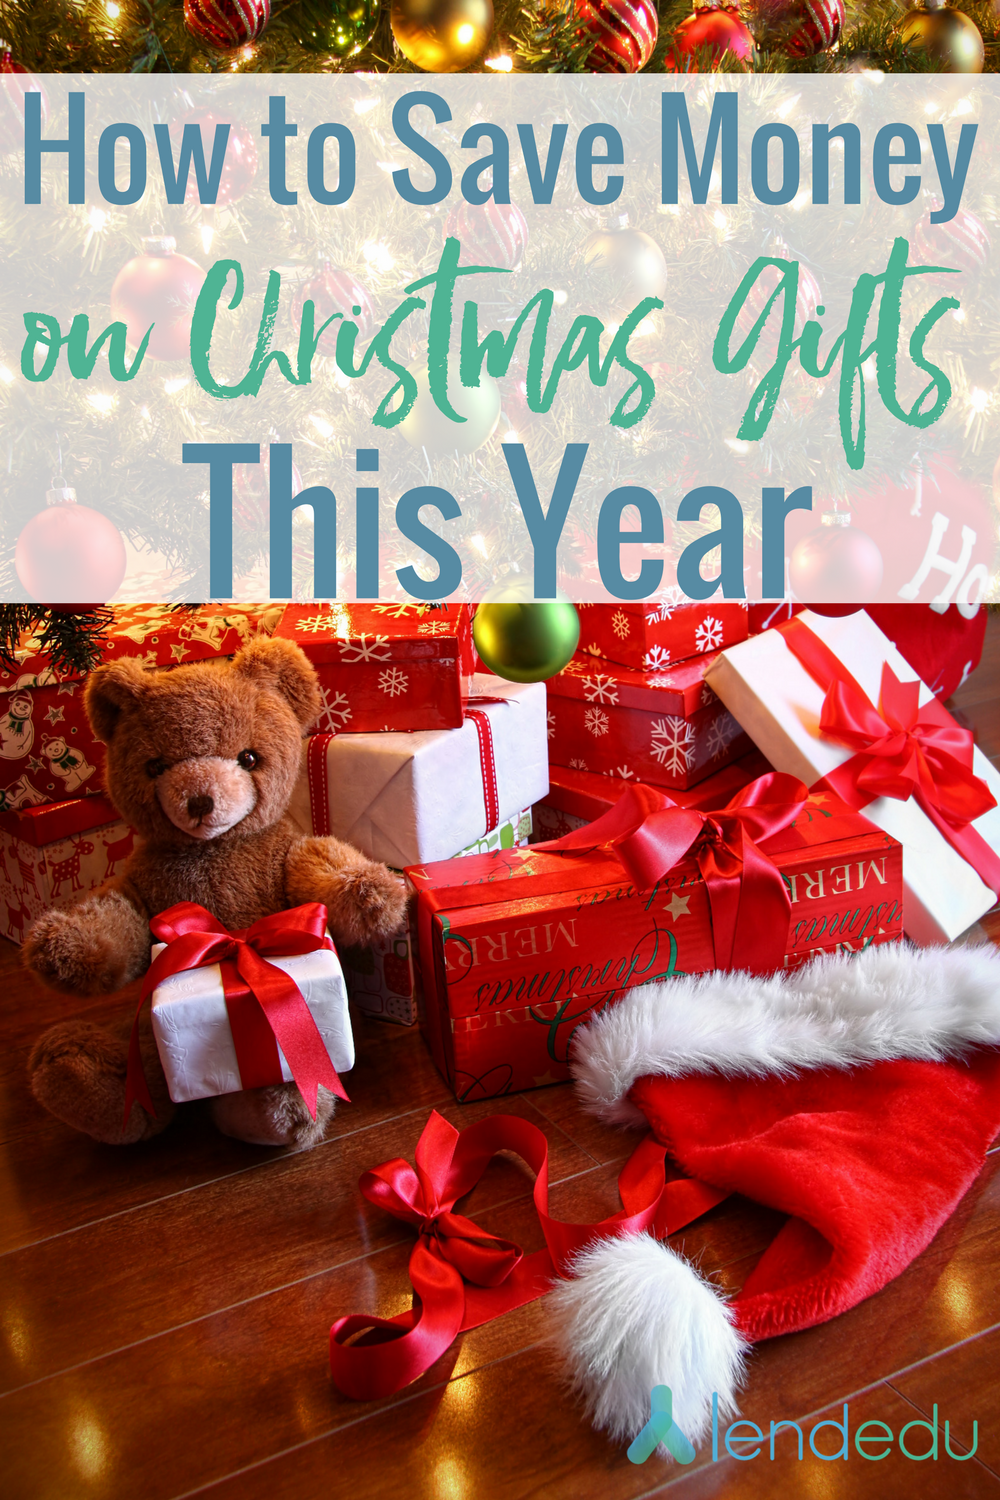 How to Save Money on Christmas Gifts This Year - LendEDU